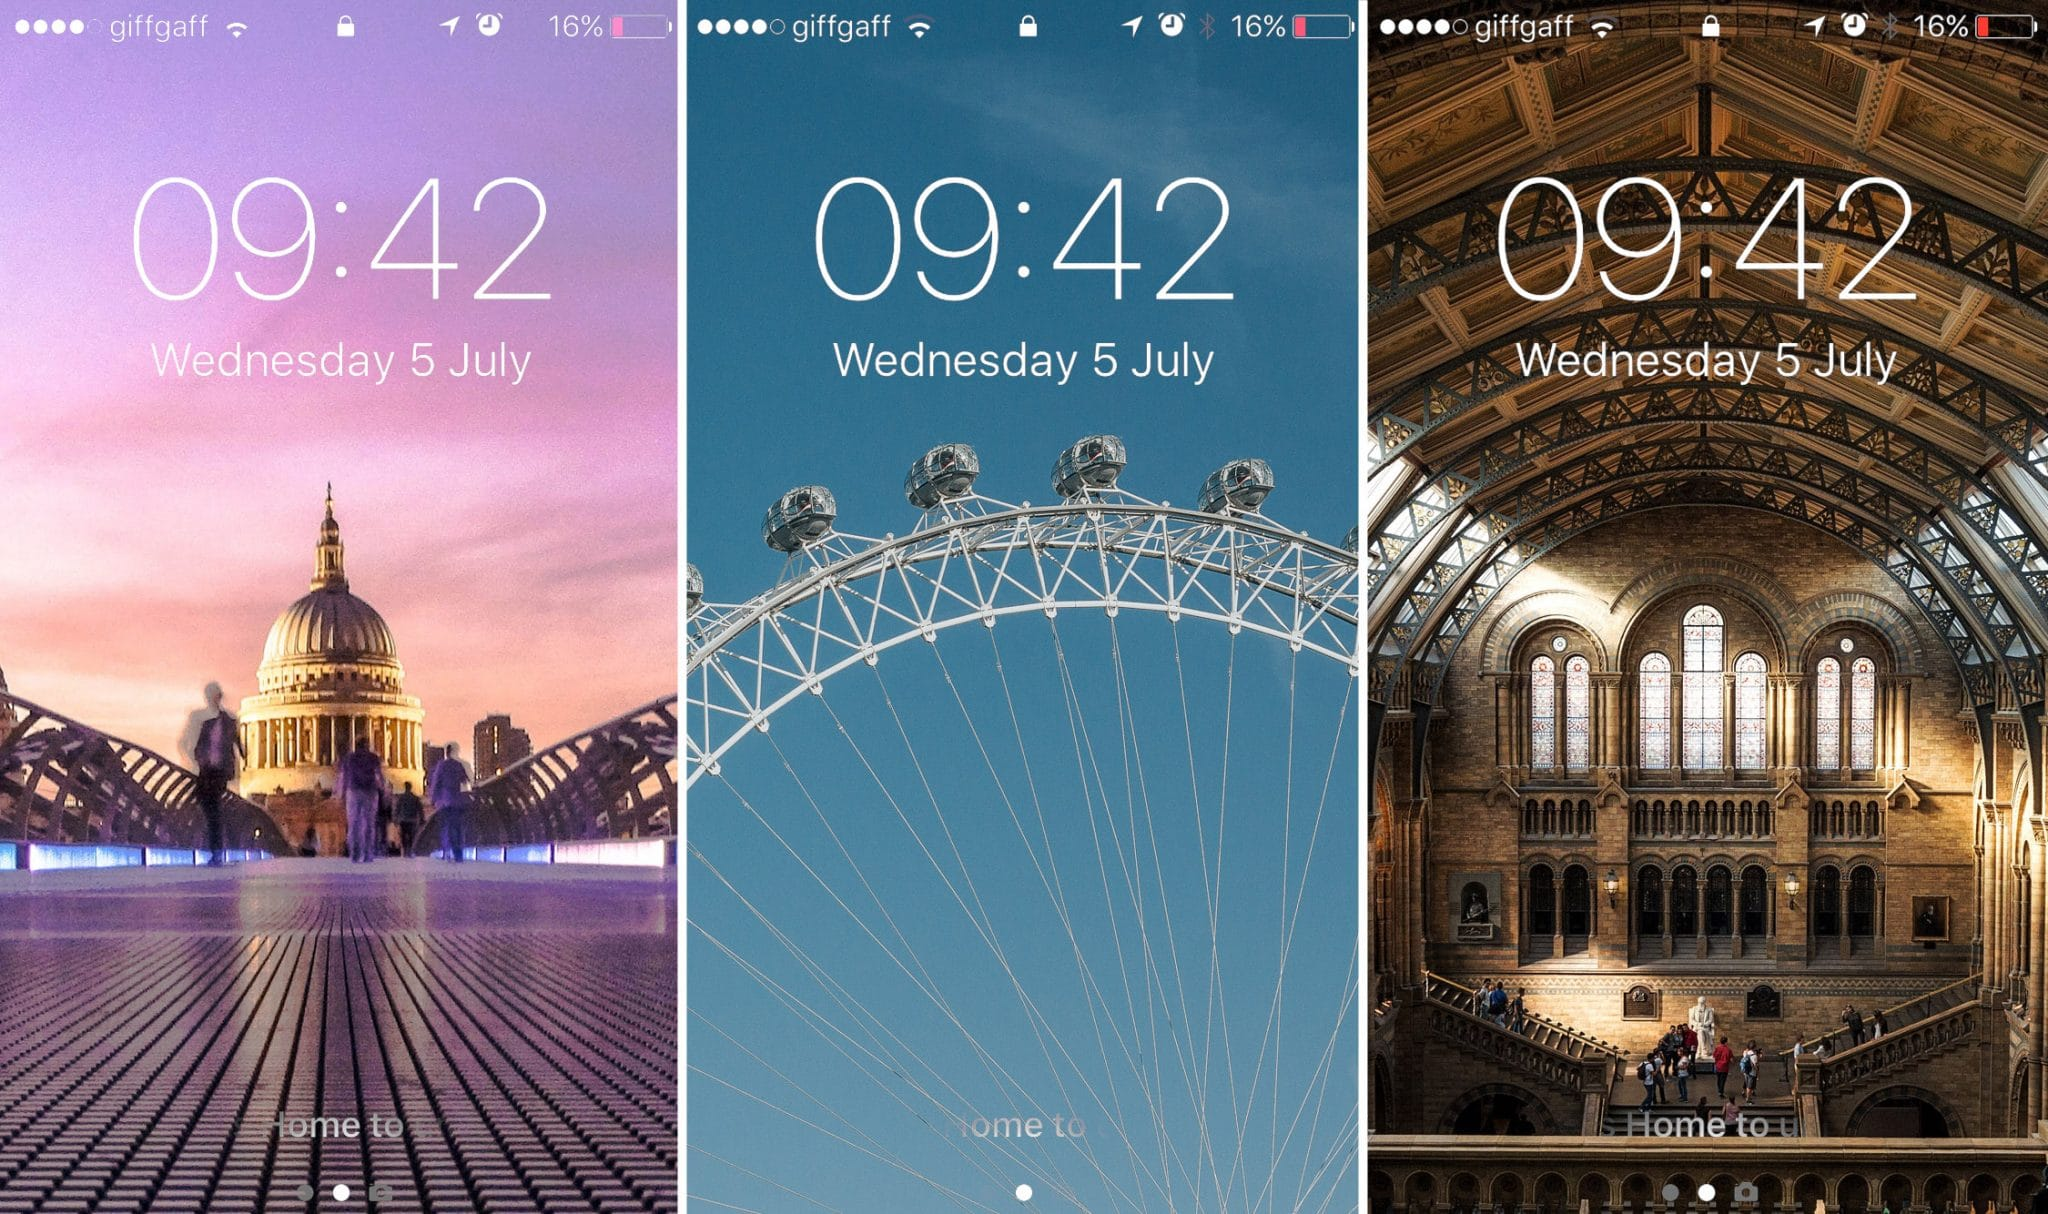 Download 23 Free Hd Phone Wallpaper Photos With A London Theme